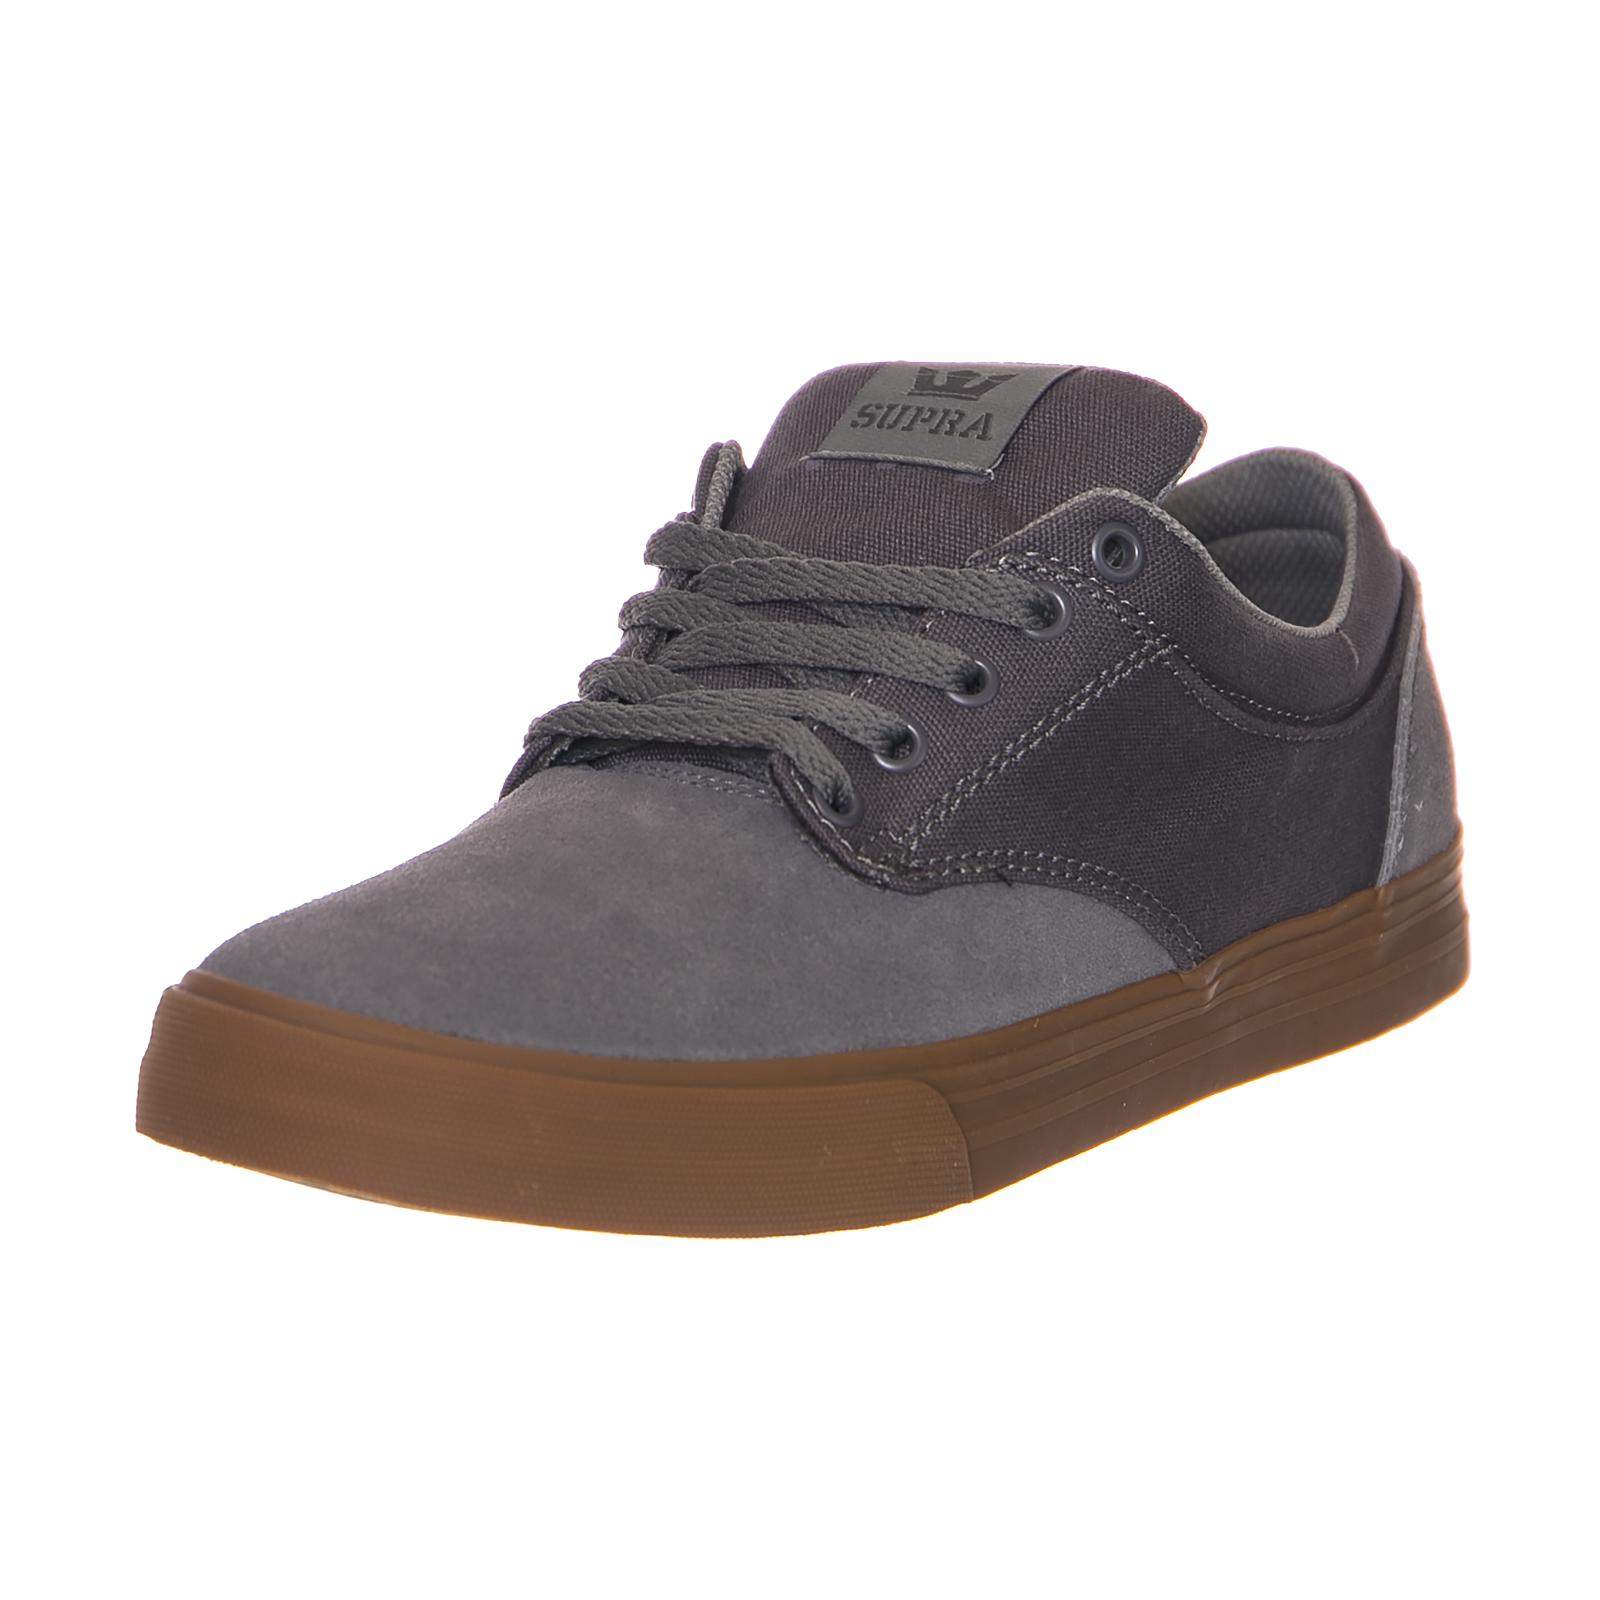 Supra Turnschuhe chino graue gum crown grau